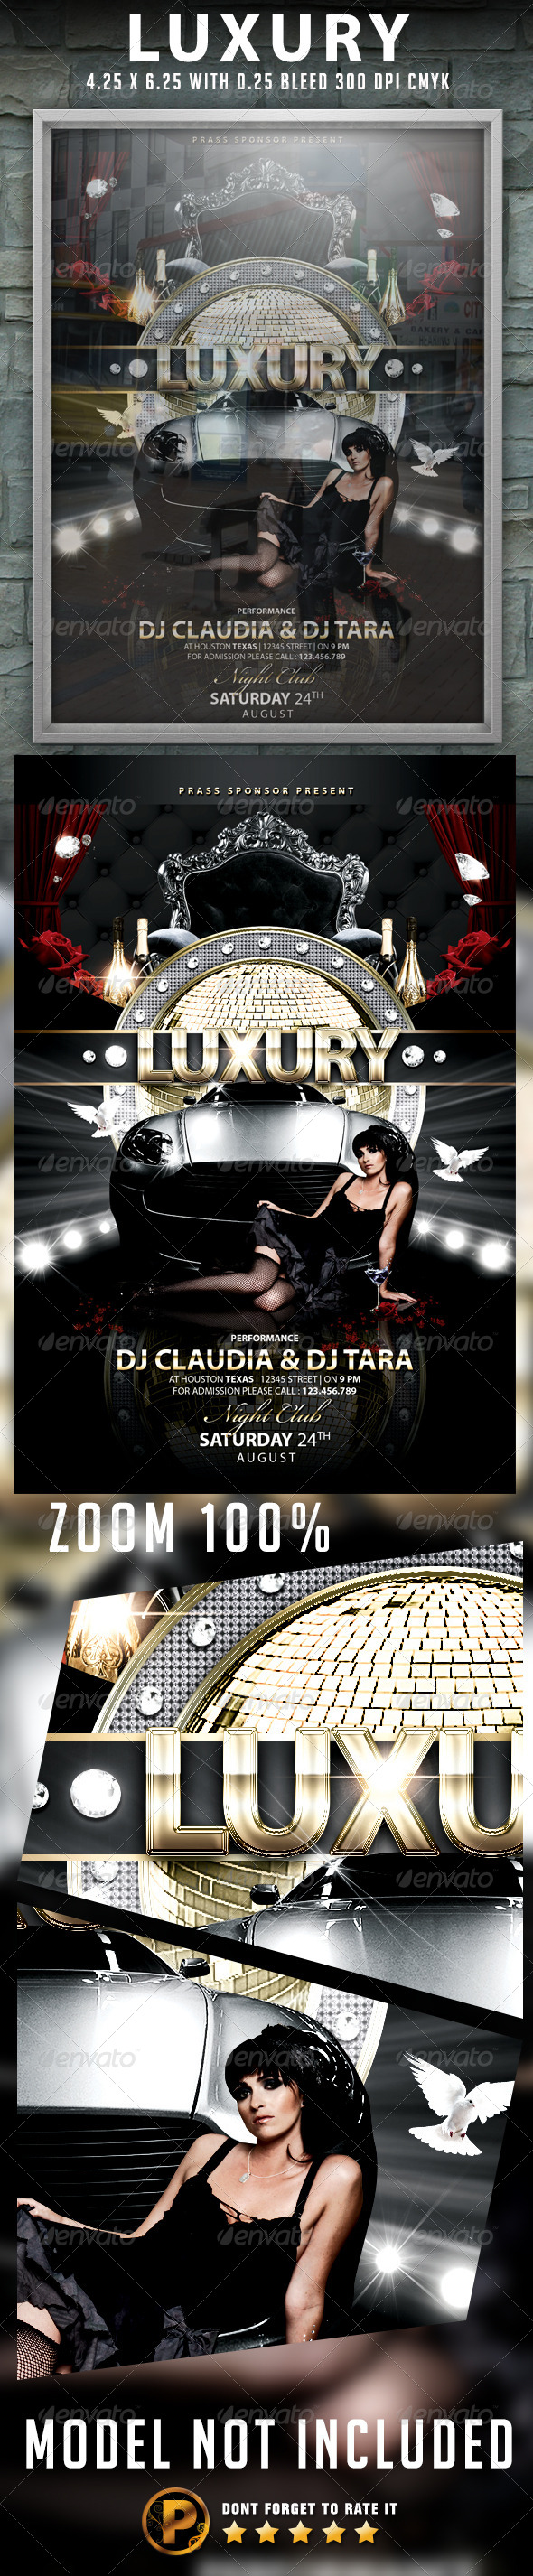 Luxury Flyer Template - Clubs & Parties Events